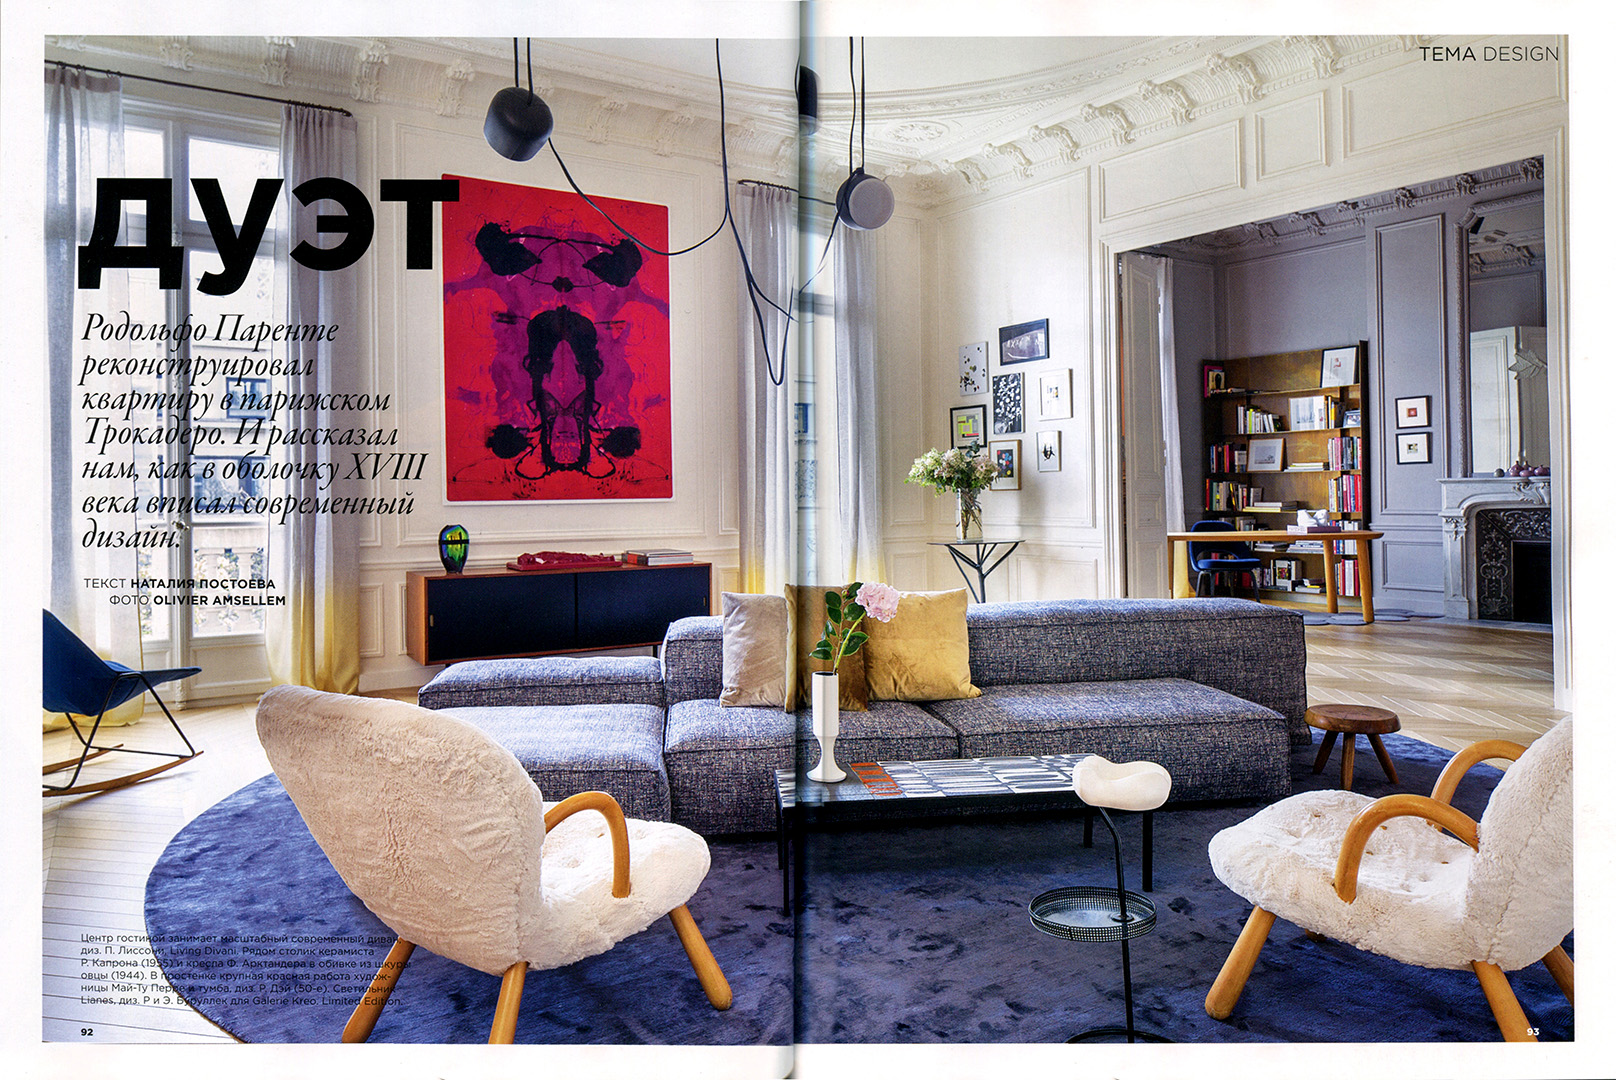 Rodolphe-Parente-Interior-Design-Magazine-2015-02